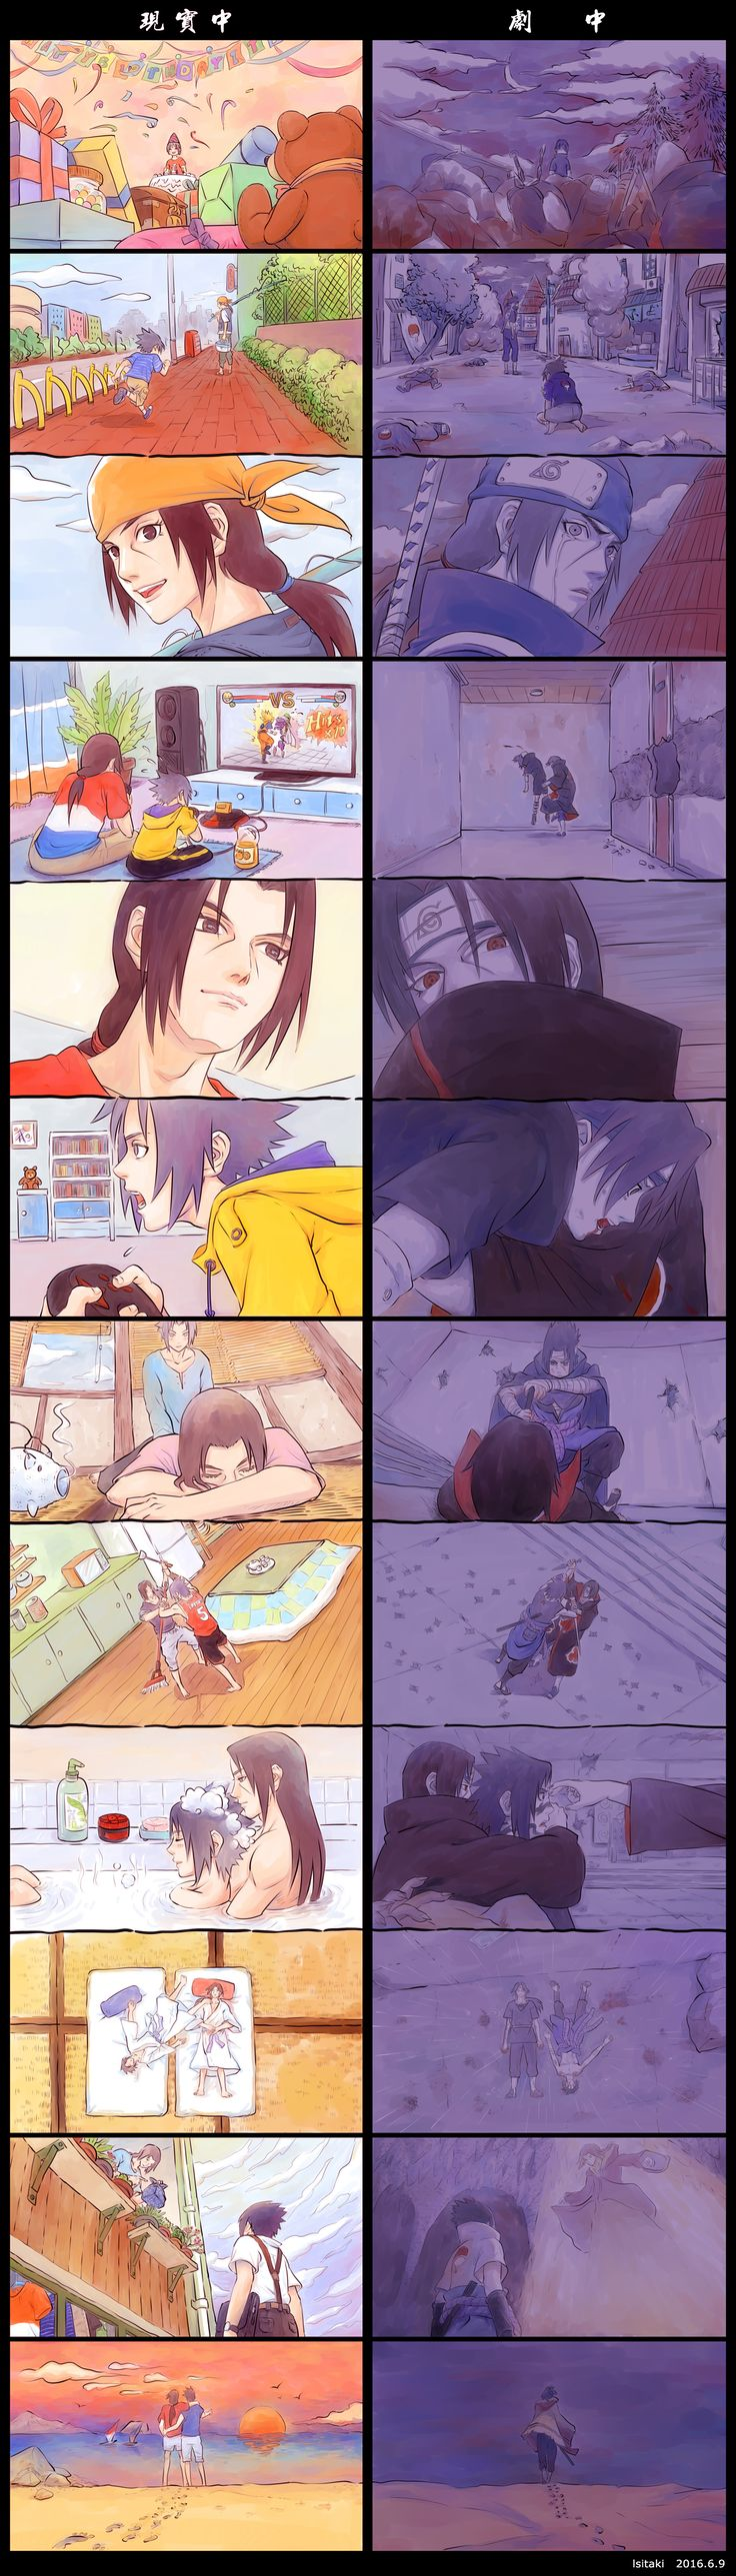 Sasuke and Itachi in parallel worlds